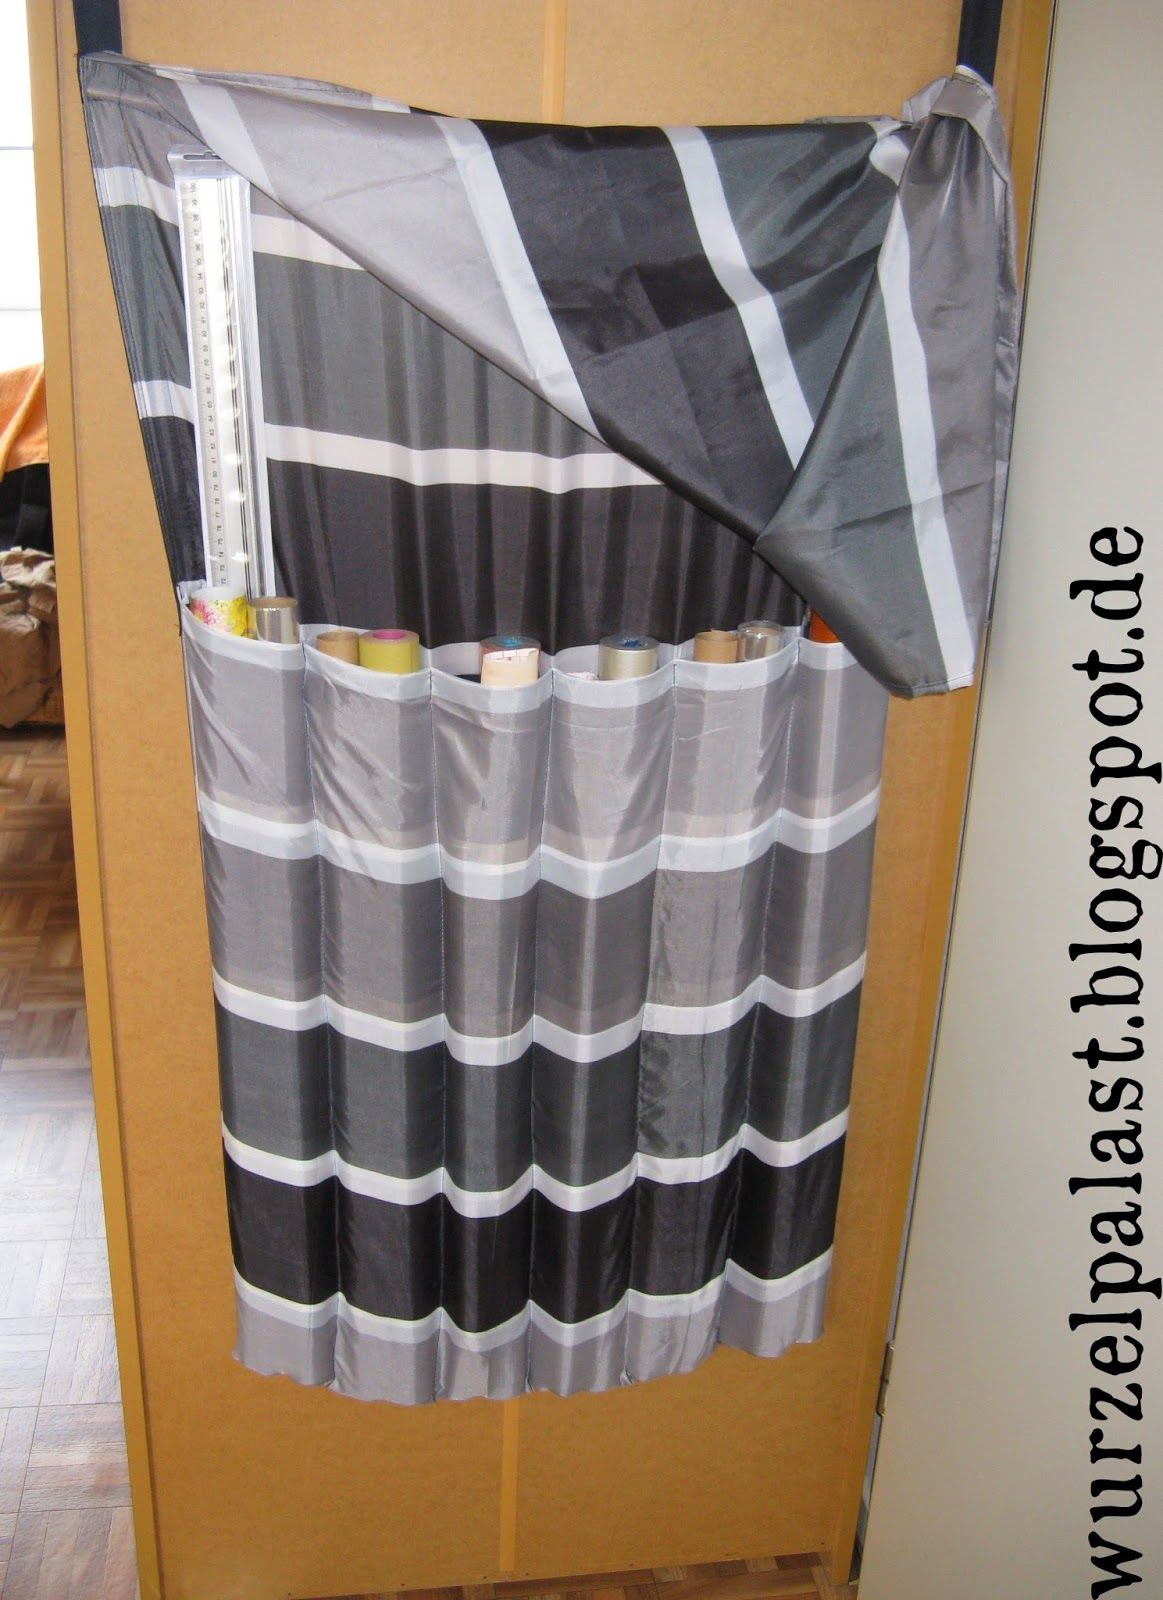 geschenkpapier aufbewahrung pinterest housekeeping and about me blog. Black Bedroom Furniture Sets. Home Design Ideas